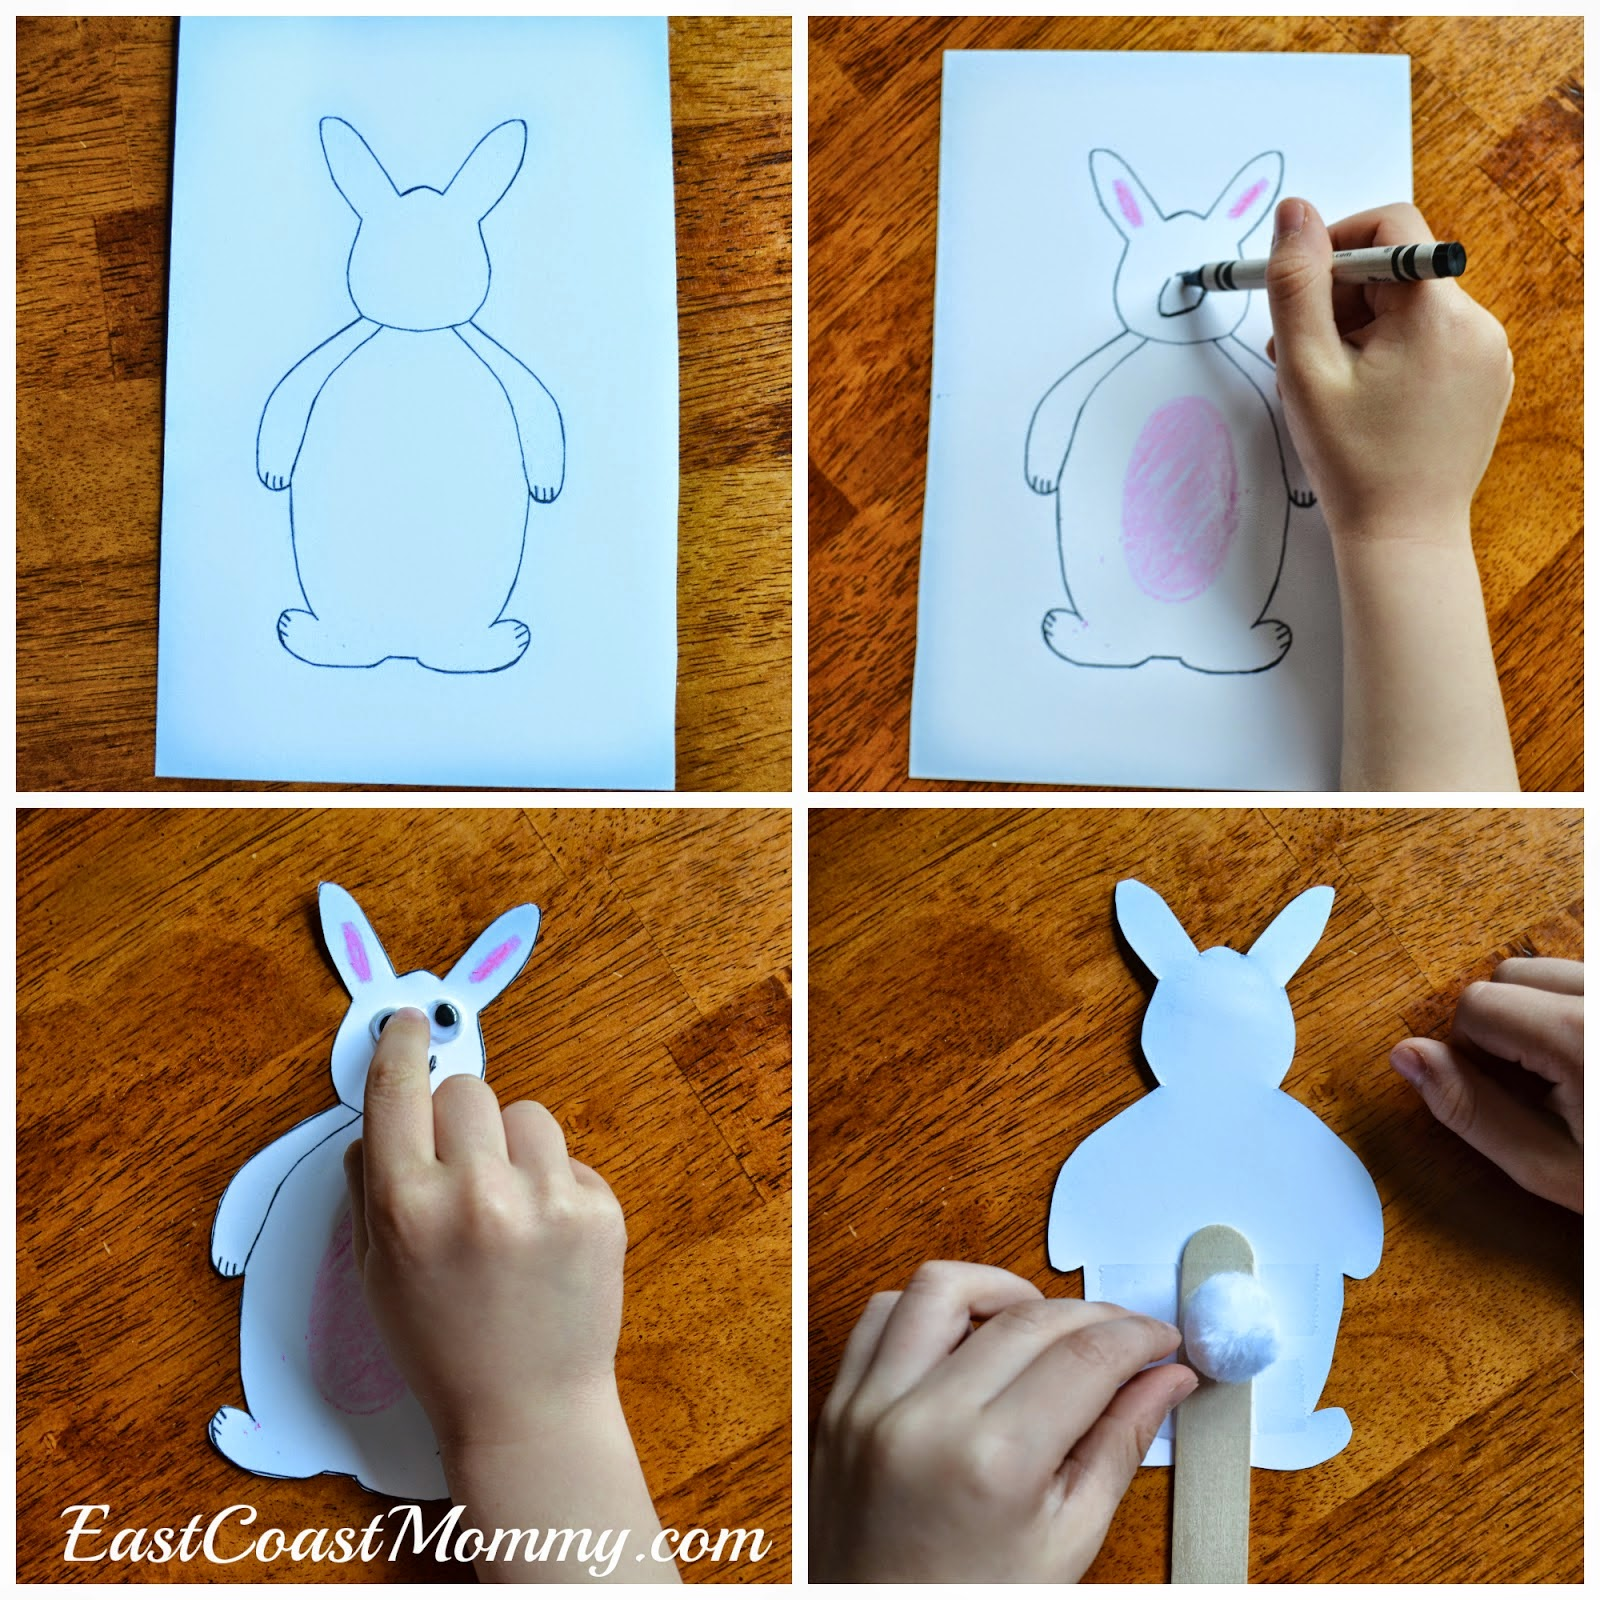 East Coast Mommy 10 Eggceptional Easter Printables